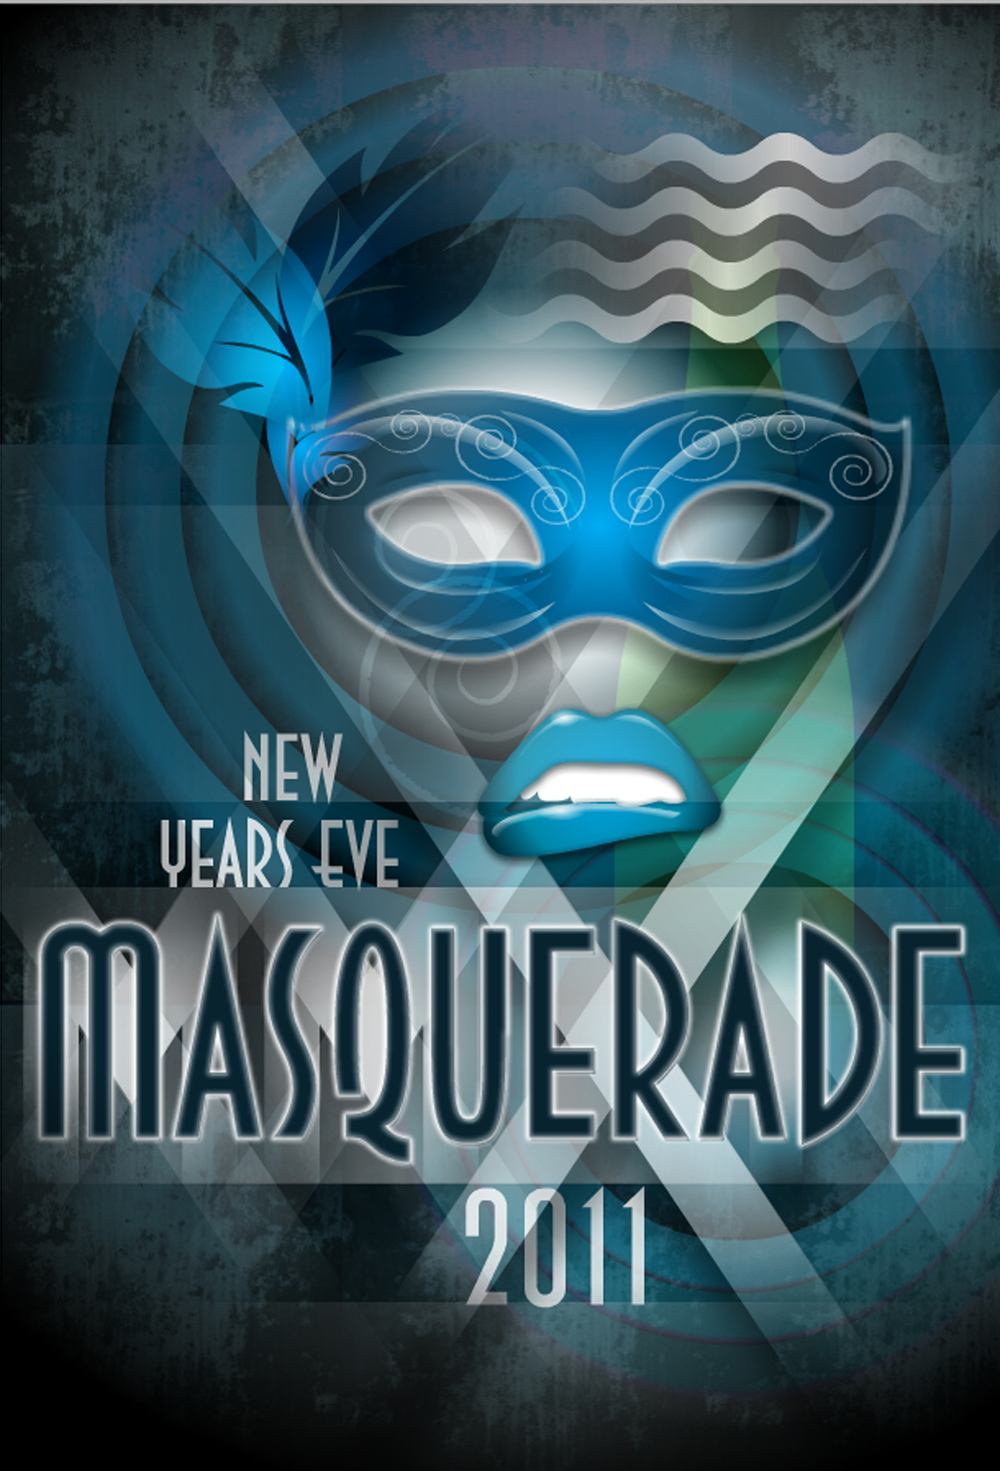 nye_2011___masquerade_party_by_dezignjk-d35wh0c.jpg